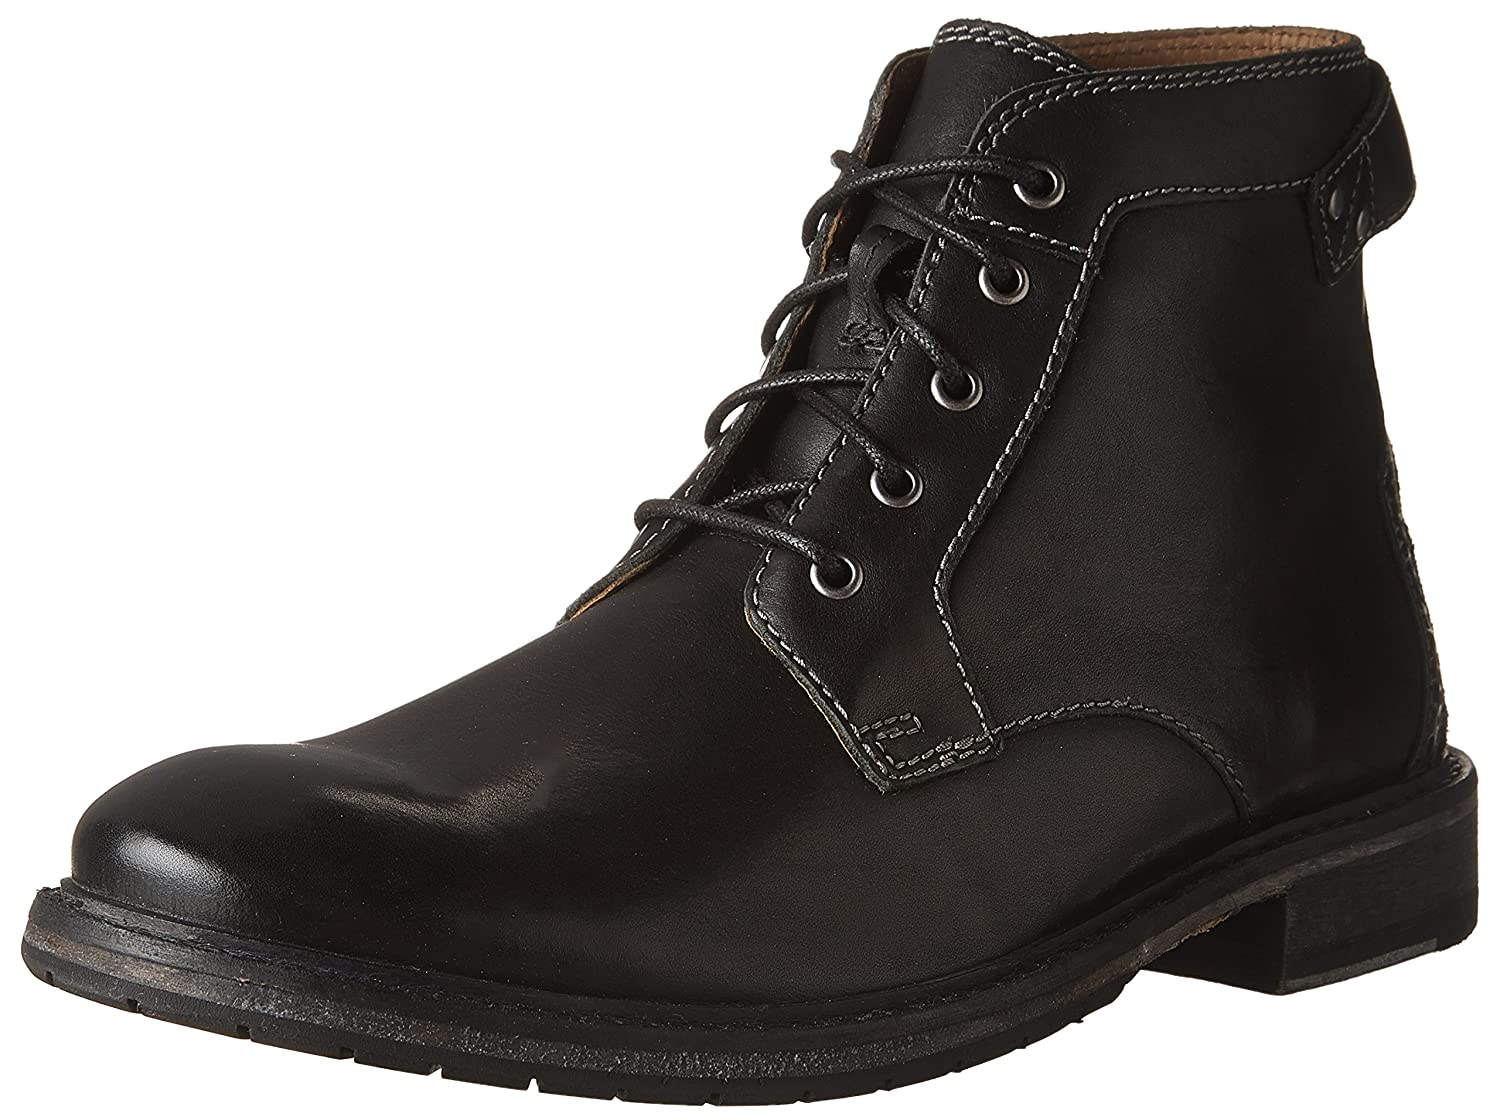 Black Leather Clarks Men's Clarkdale Bud Ankle Boots